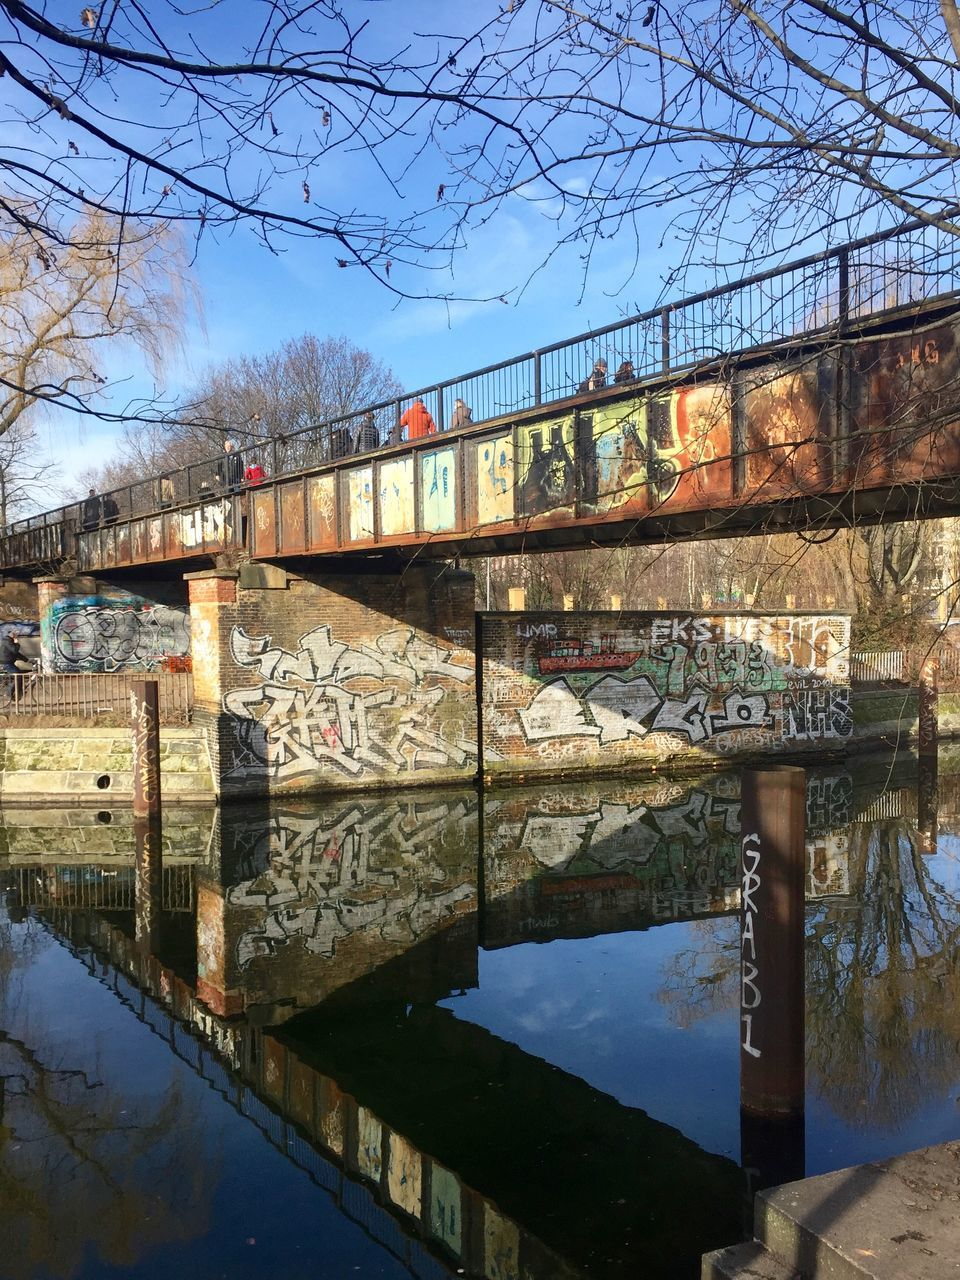 bridge - man made structure, connection, architecture, water, reflection, built structure, transportation, river, bare tree, day, bridge, tree, sky, outdoors, nature, no people, footbridge